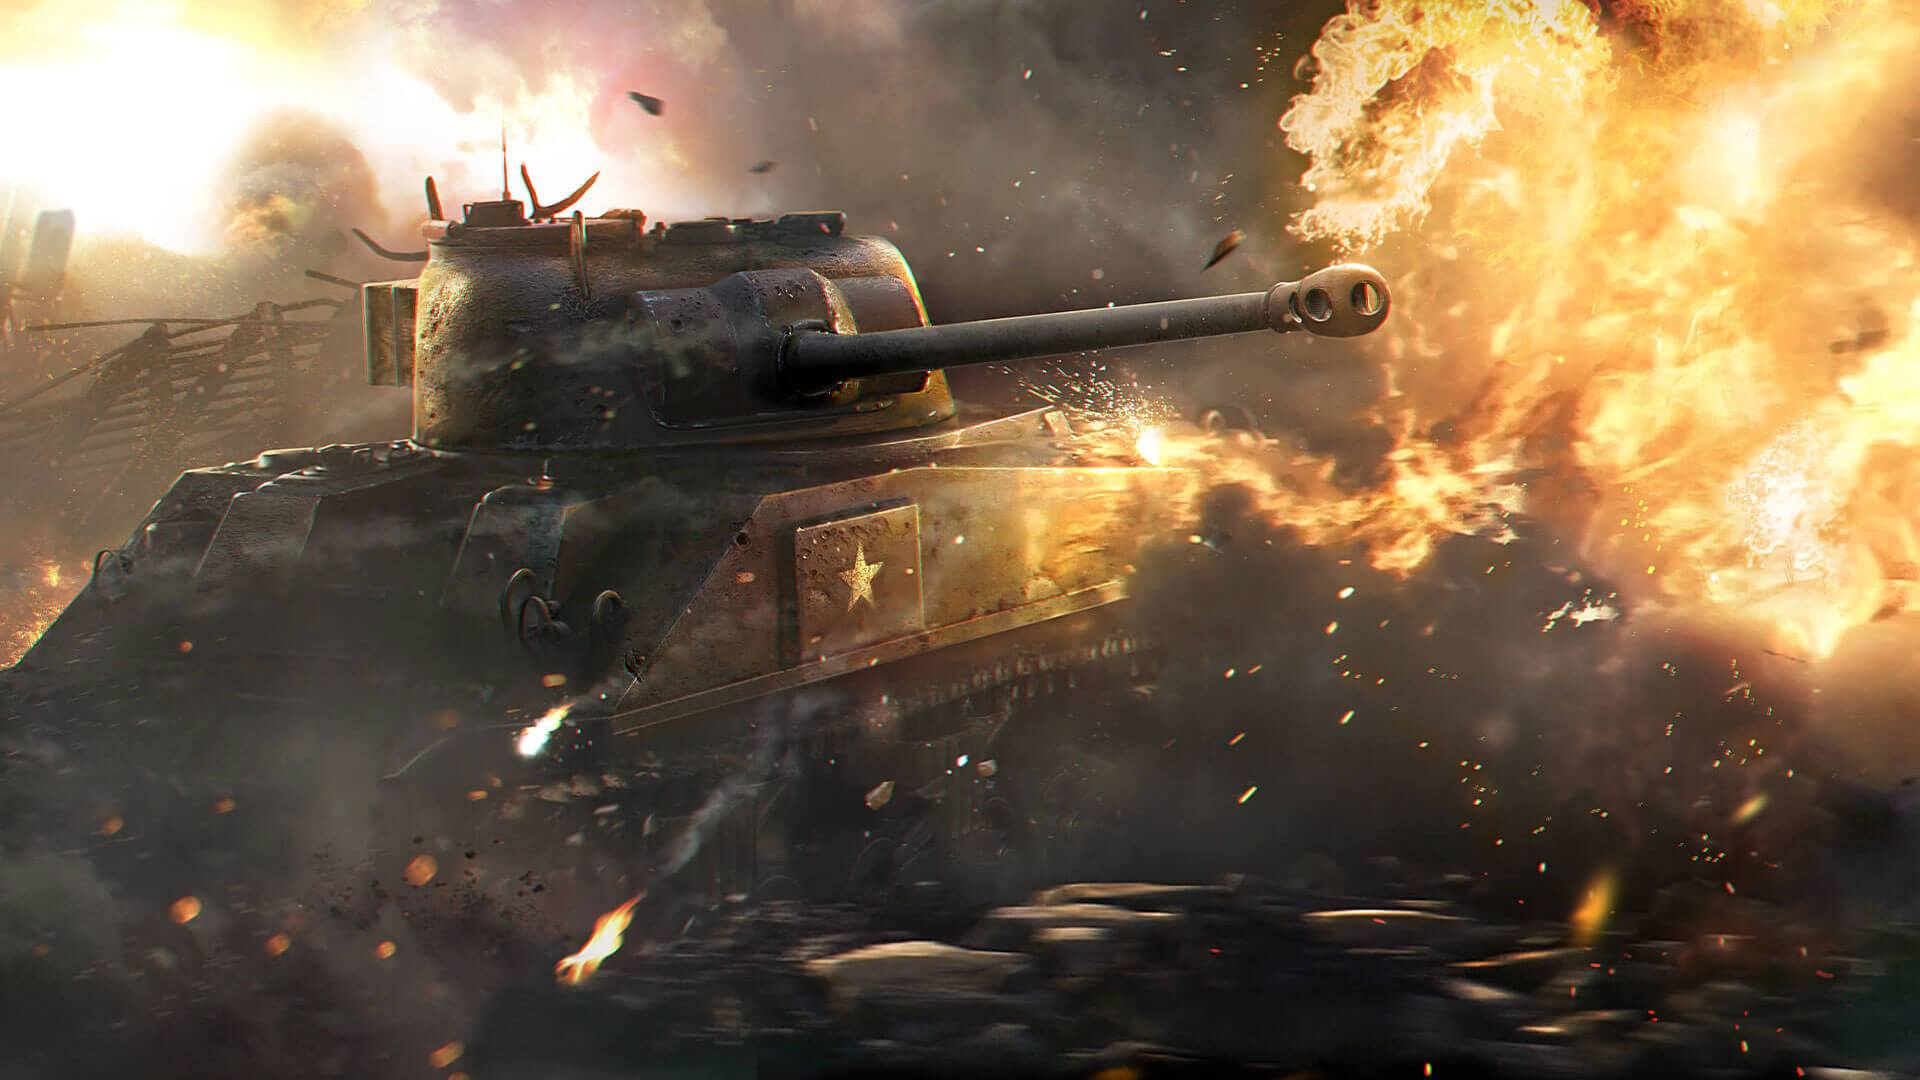 Download the World of Tanks game on the official website